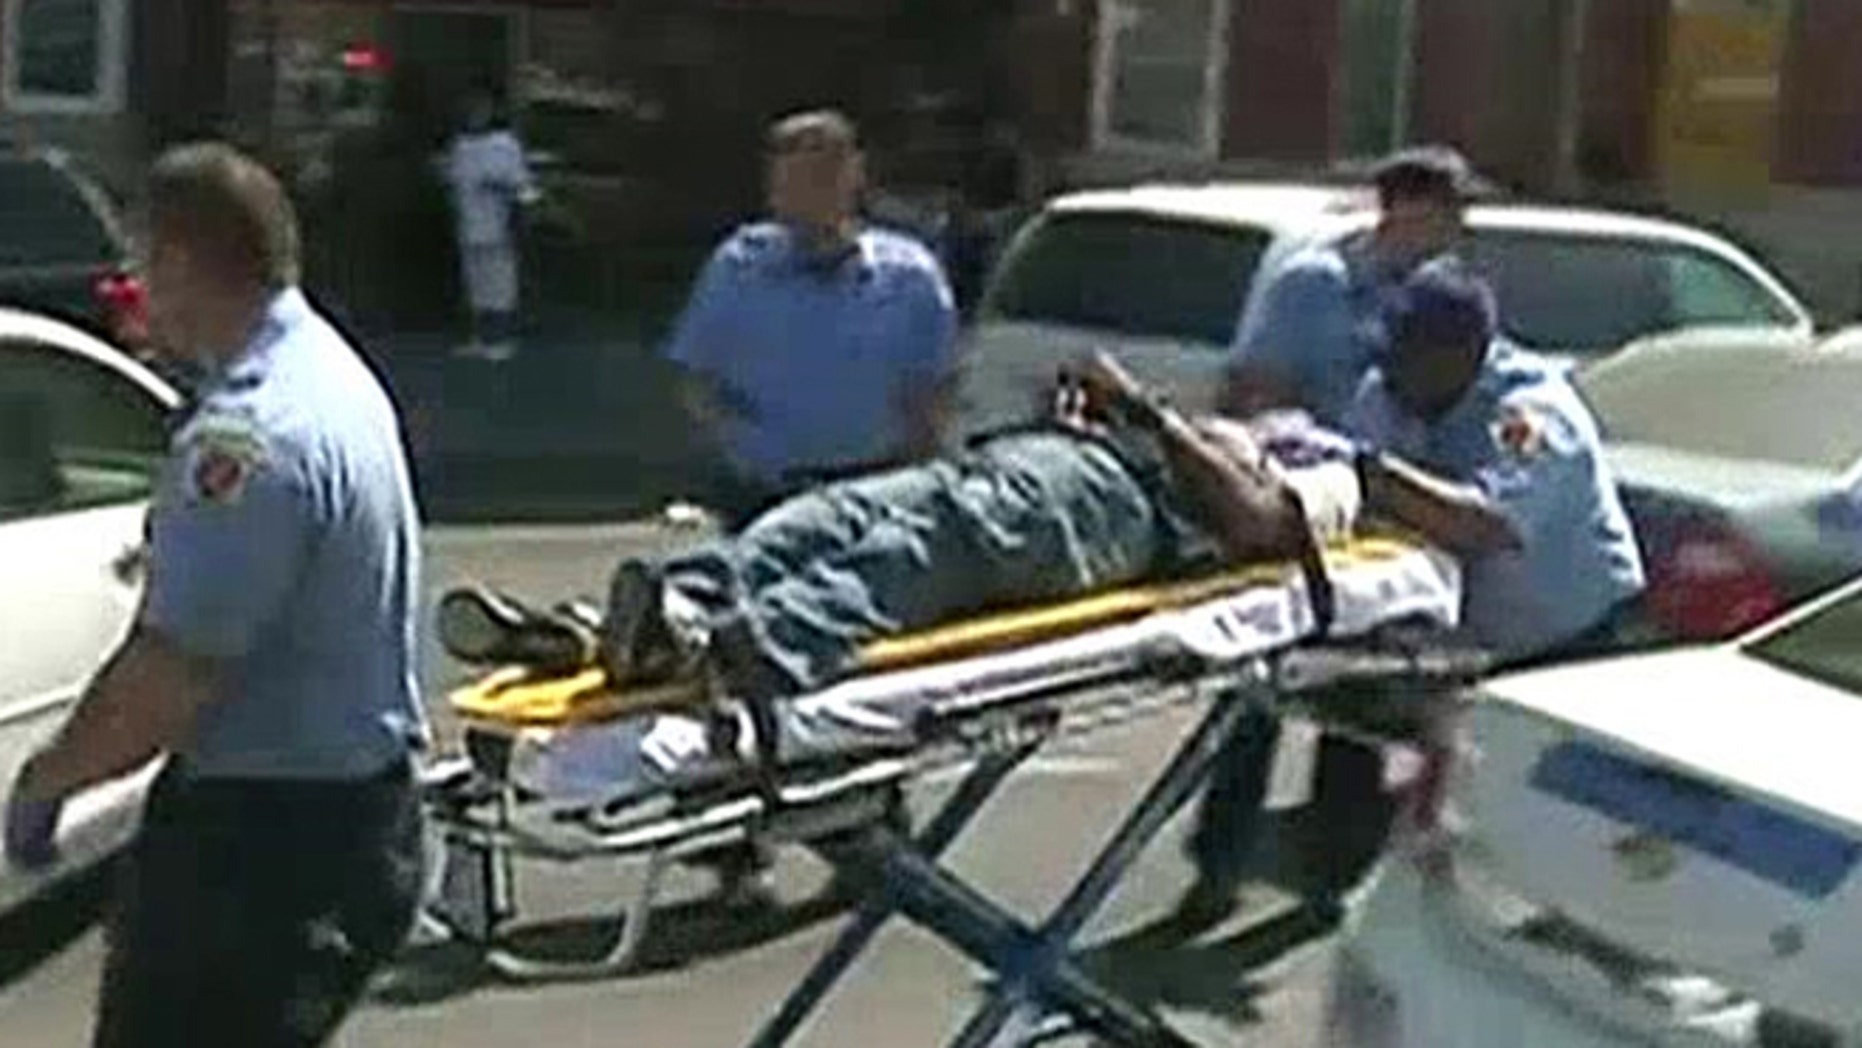 The unidentified man is seen in a stretcher after gunfire was heard Monday in Baltimore, Md.